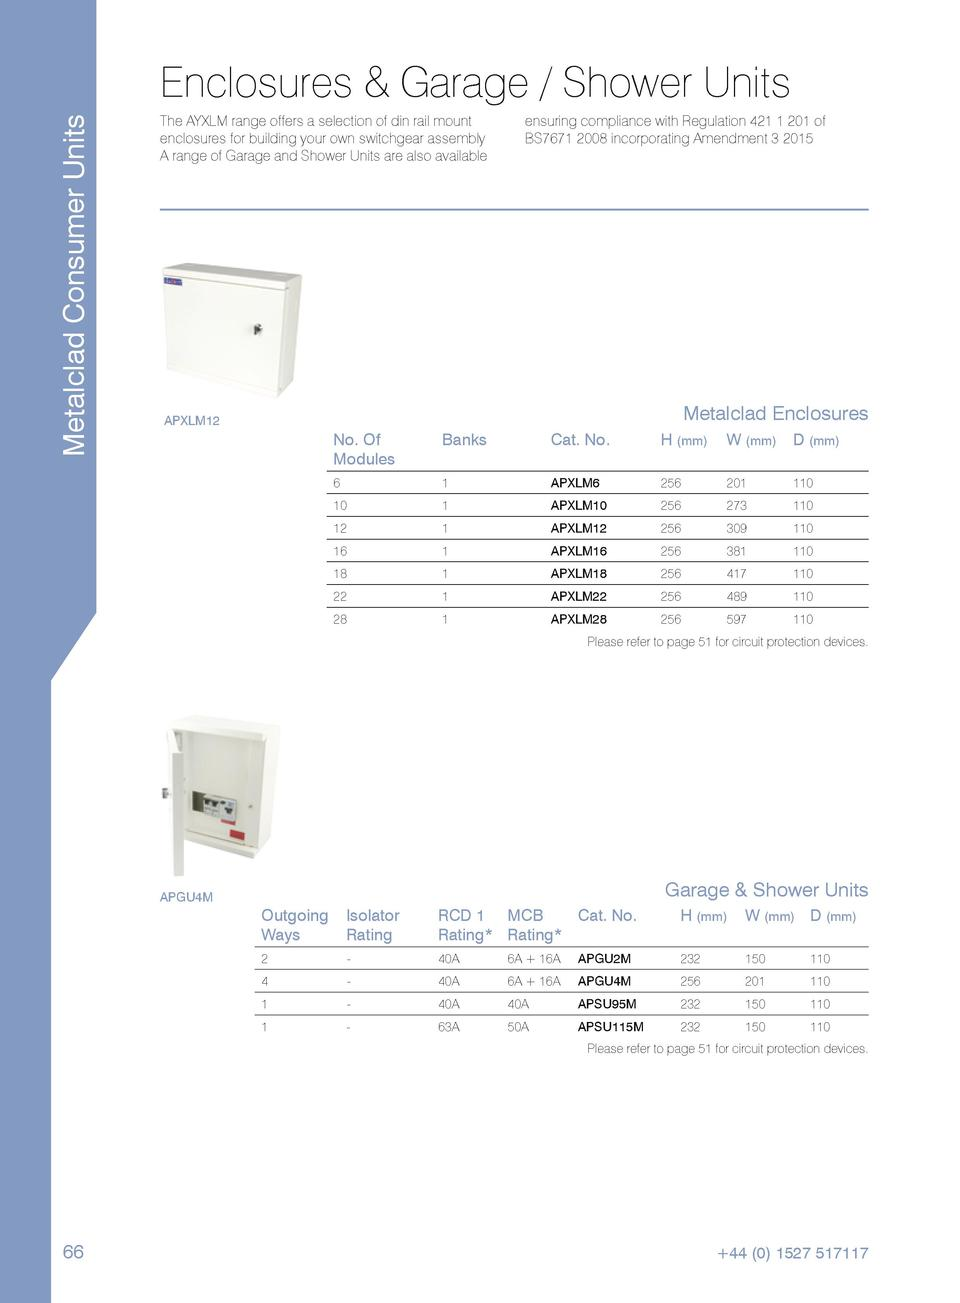 Metalclad Consumer Units  Enclosures   Garage   Shower Units The AYXLM range offers a selection of din rail mount enclosur...